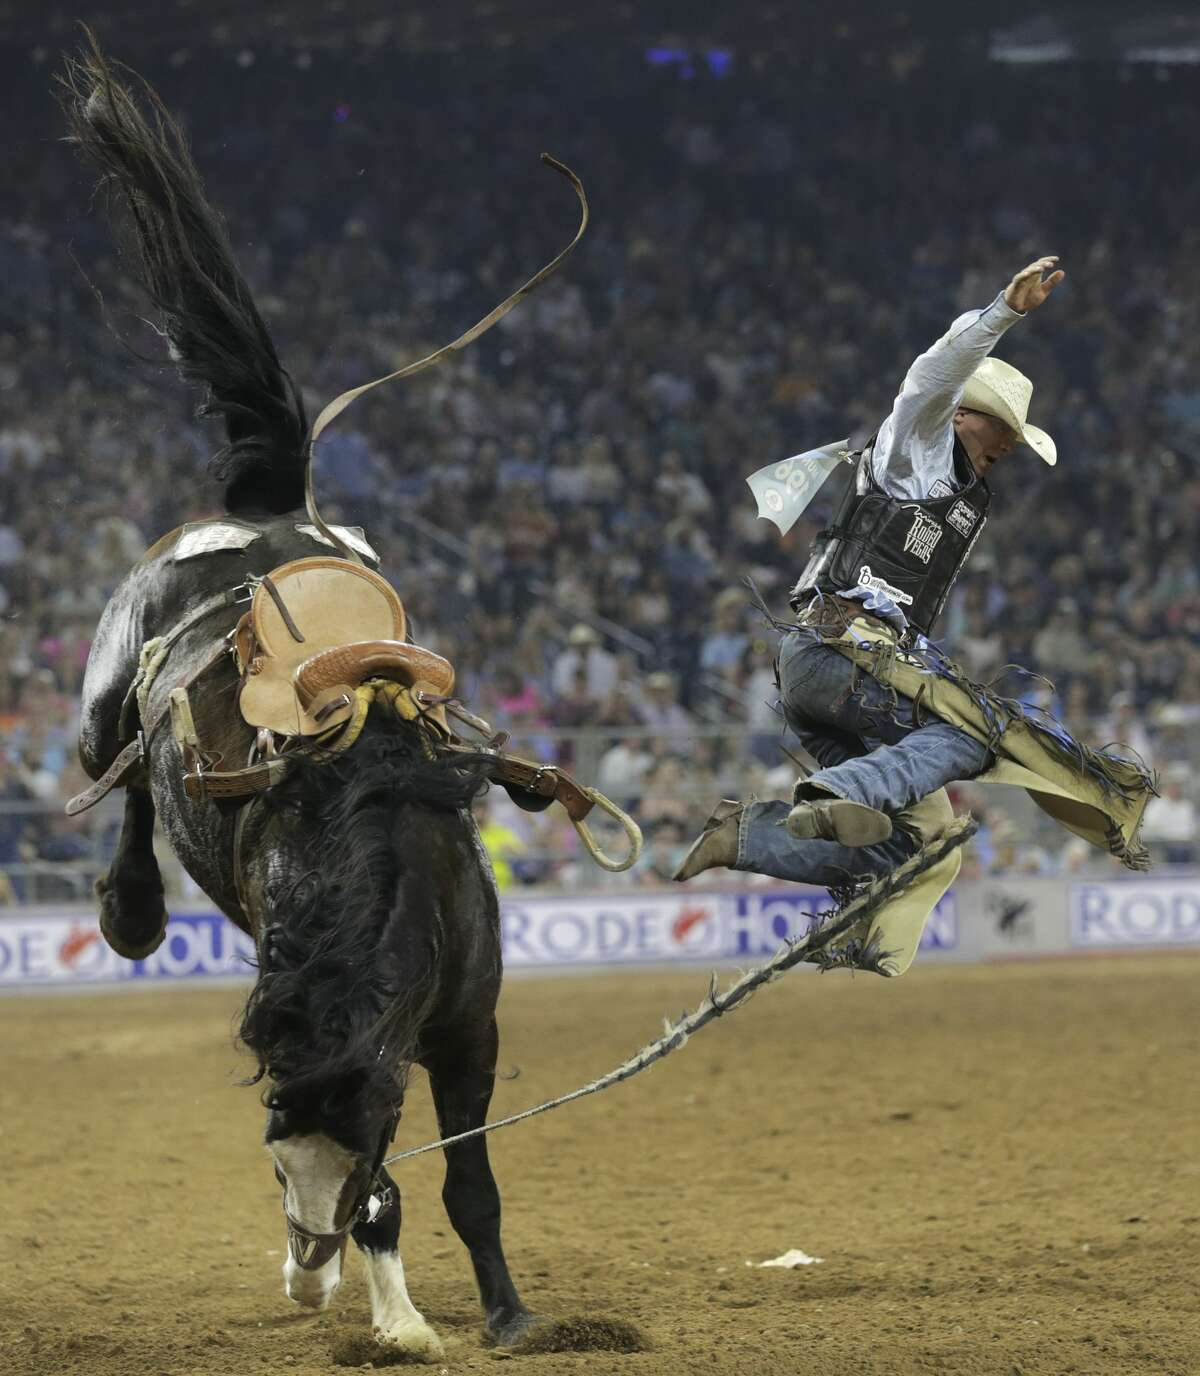 Tim O'Connell jumps off his horse after competing in the bareback riding event at the Houston Rodeo on Sunday, March 26, 2017, in Houston. O'Connell won the event and $25,000.( Elizabeth Conley / Houston Chronicle )